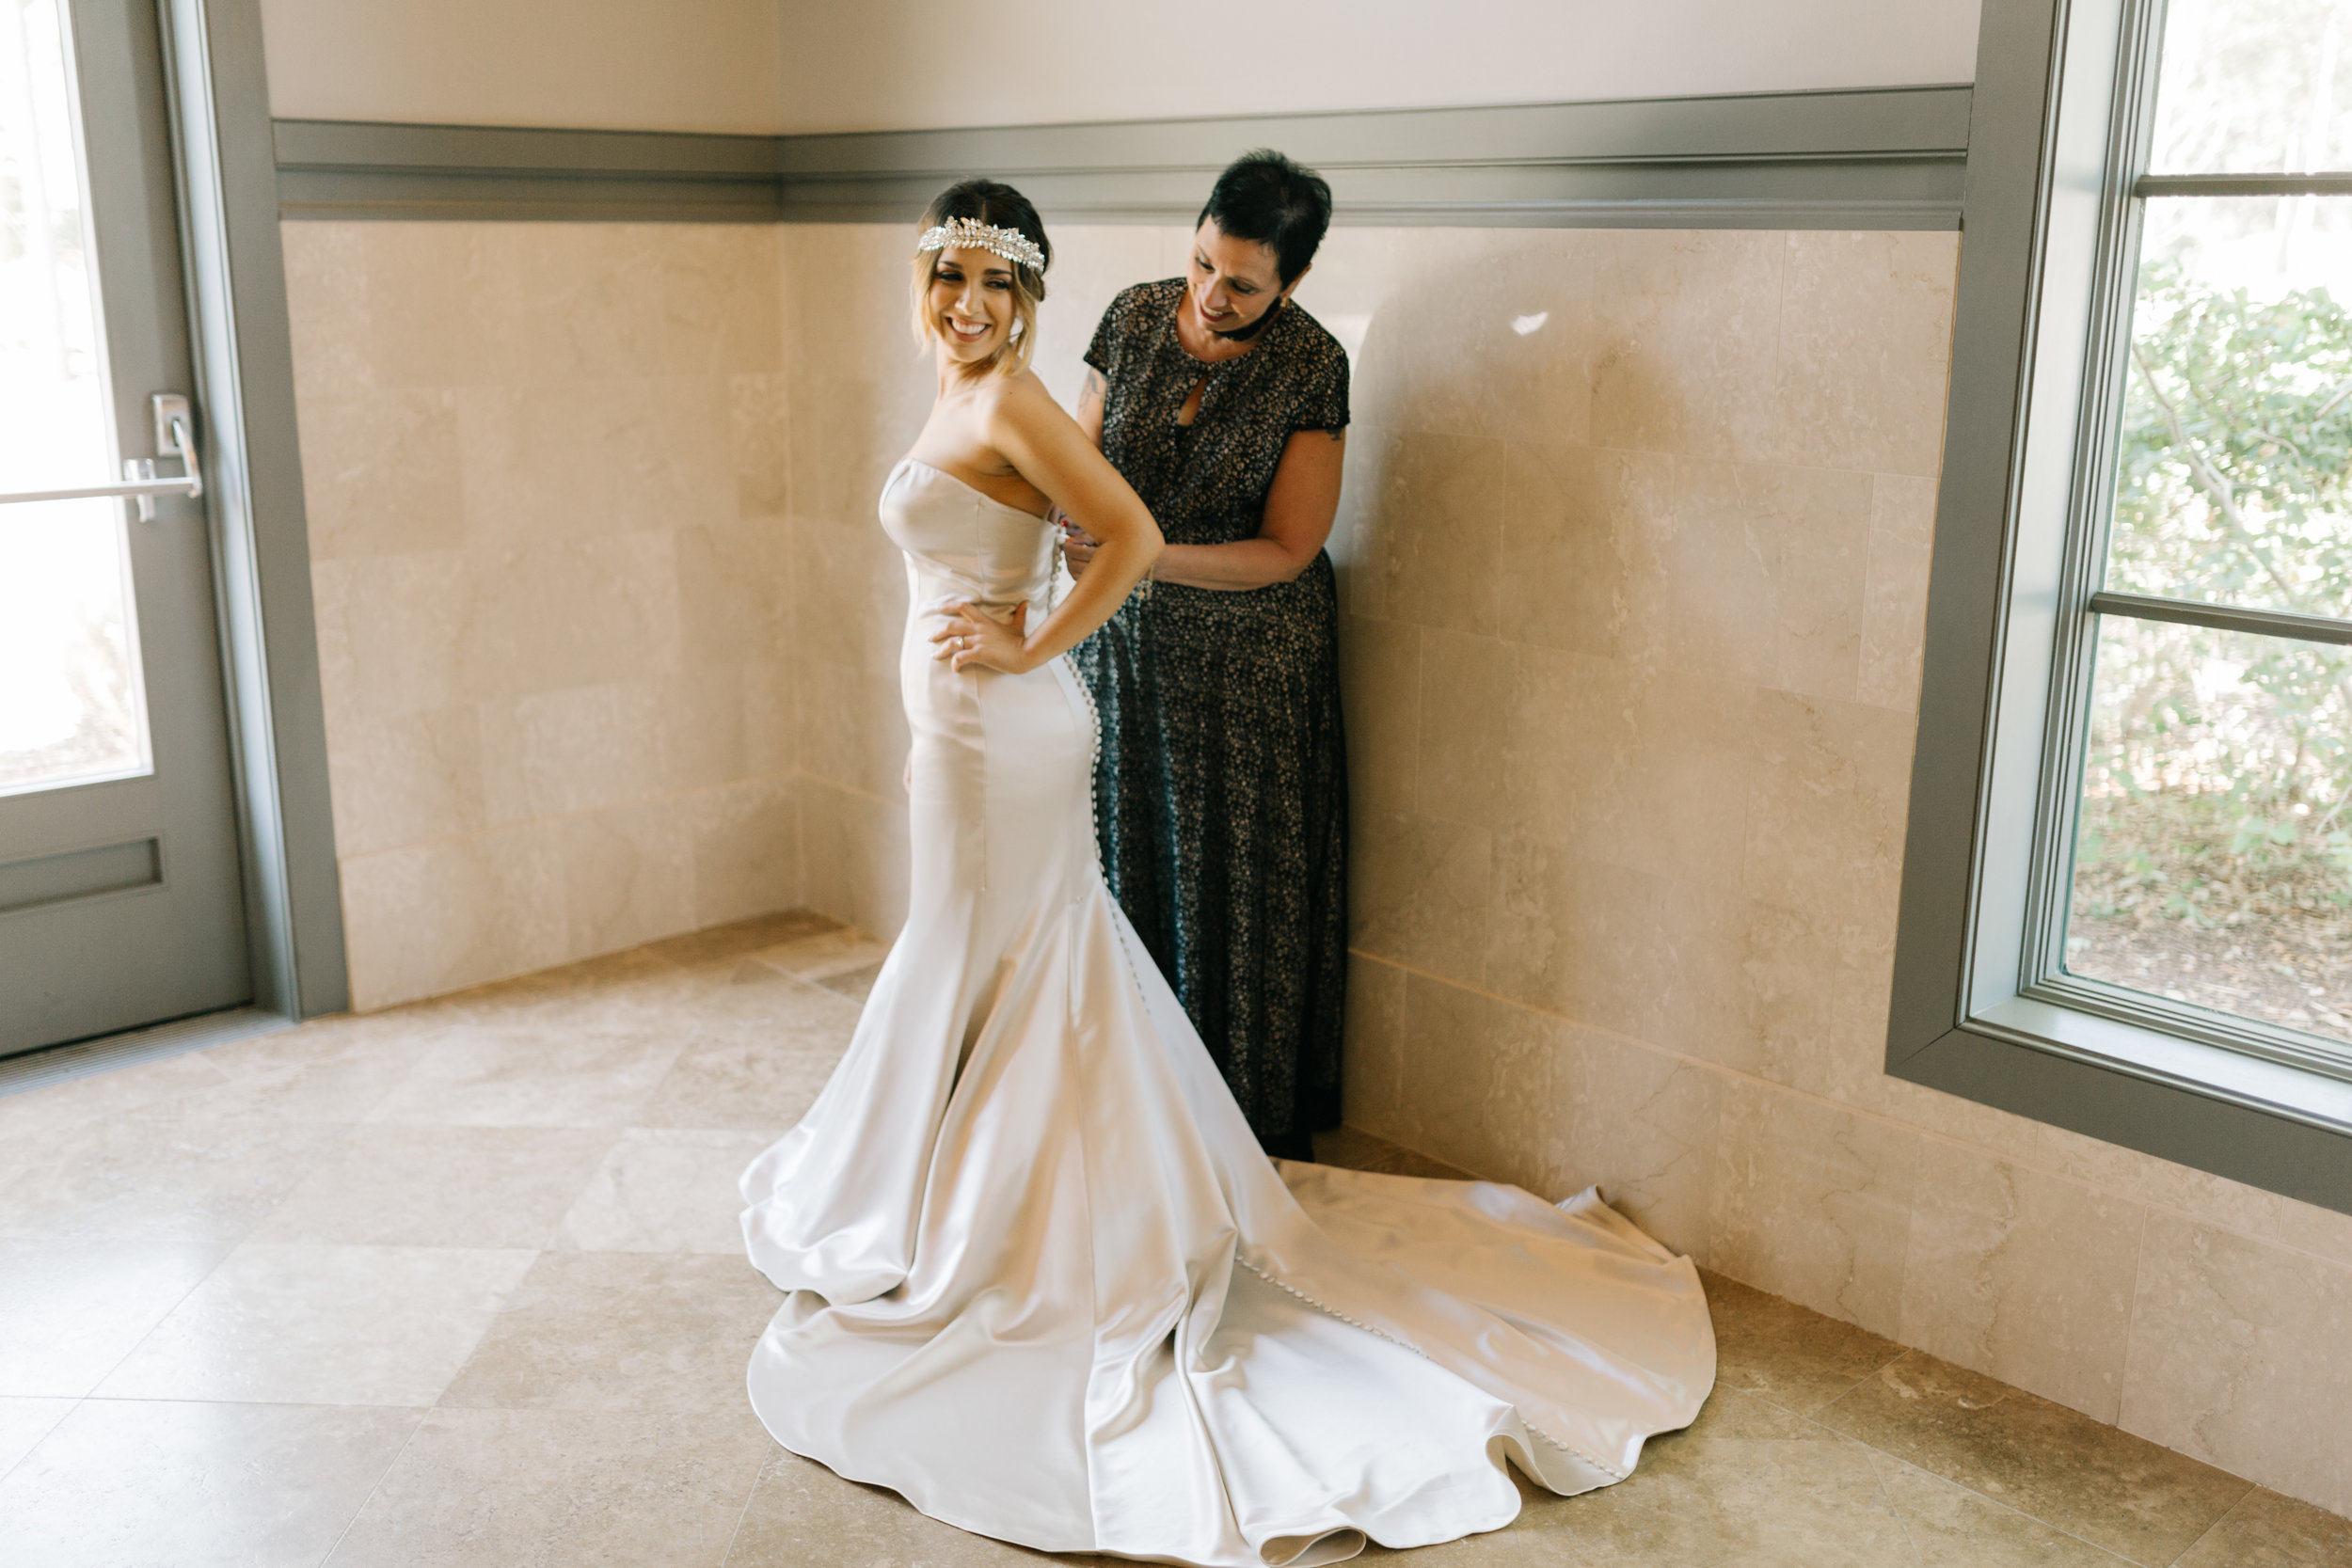 Orlando-Wedding-Photographer_Noahs-Event-Venue-Wedding_Giana-and-Jeff_Orlando-FL_0204.jpg